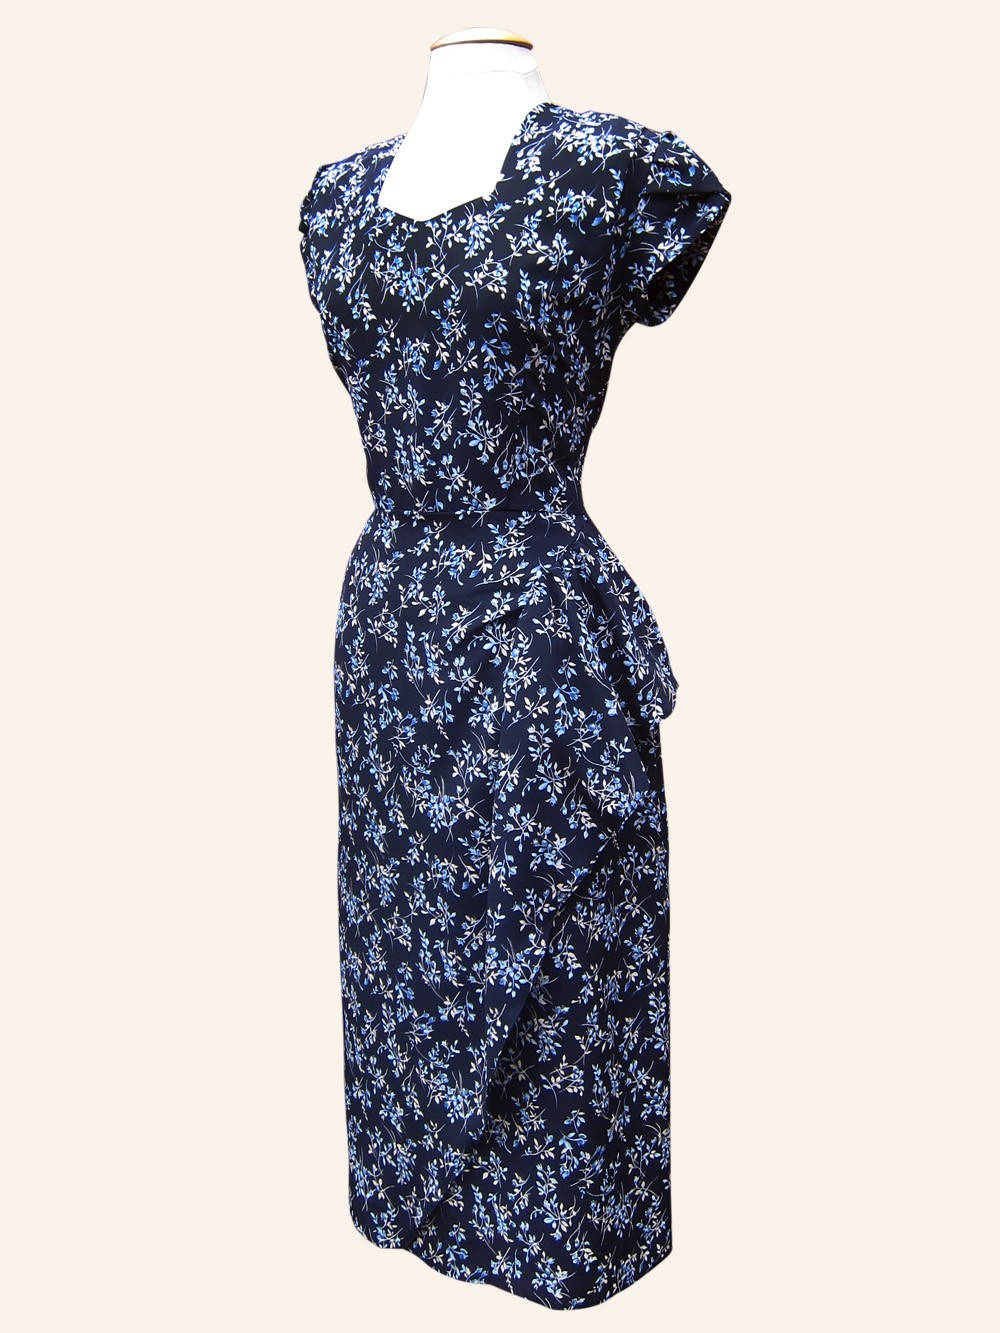 View all 1940s dress view all navy 1940s dress view all end of